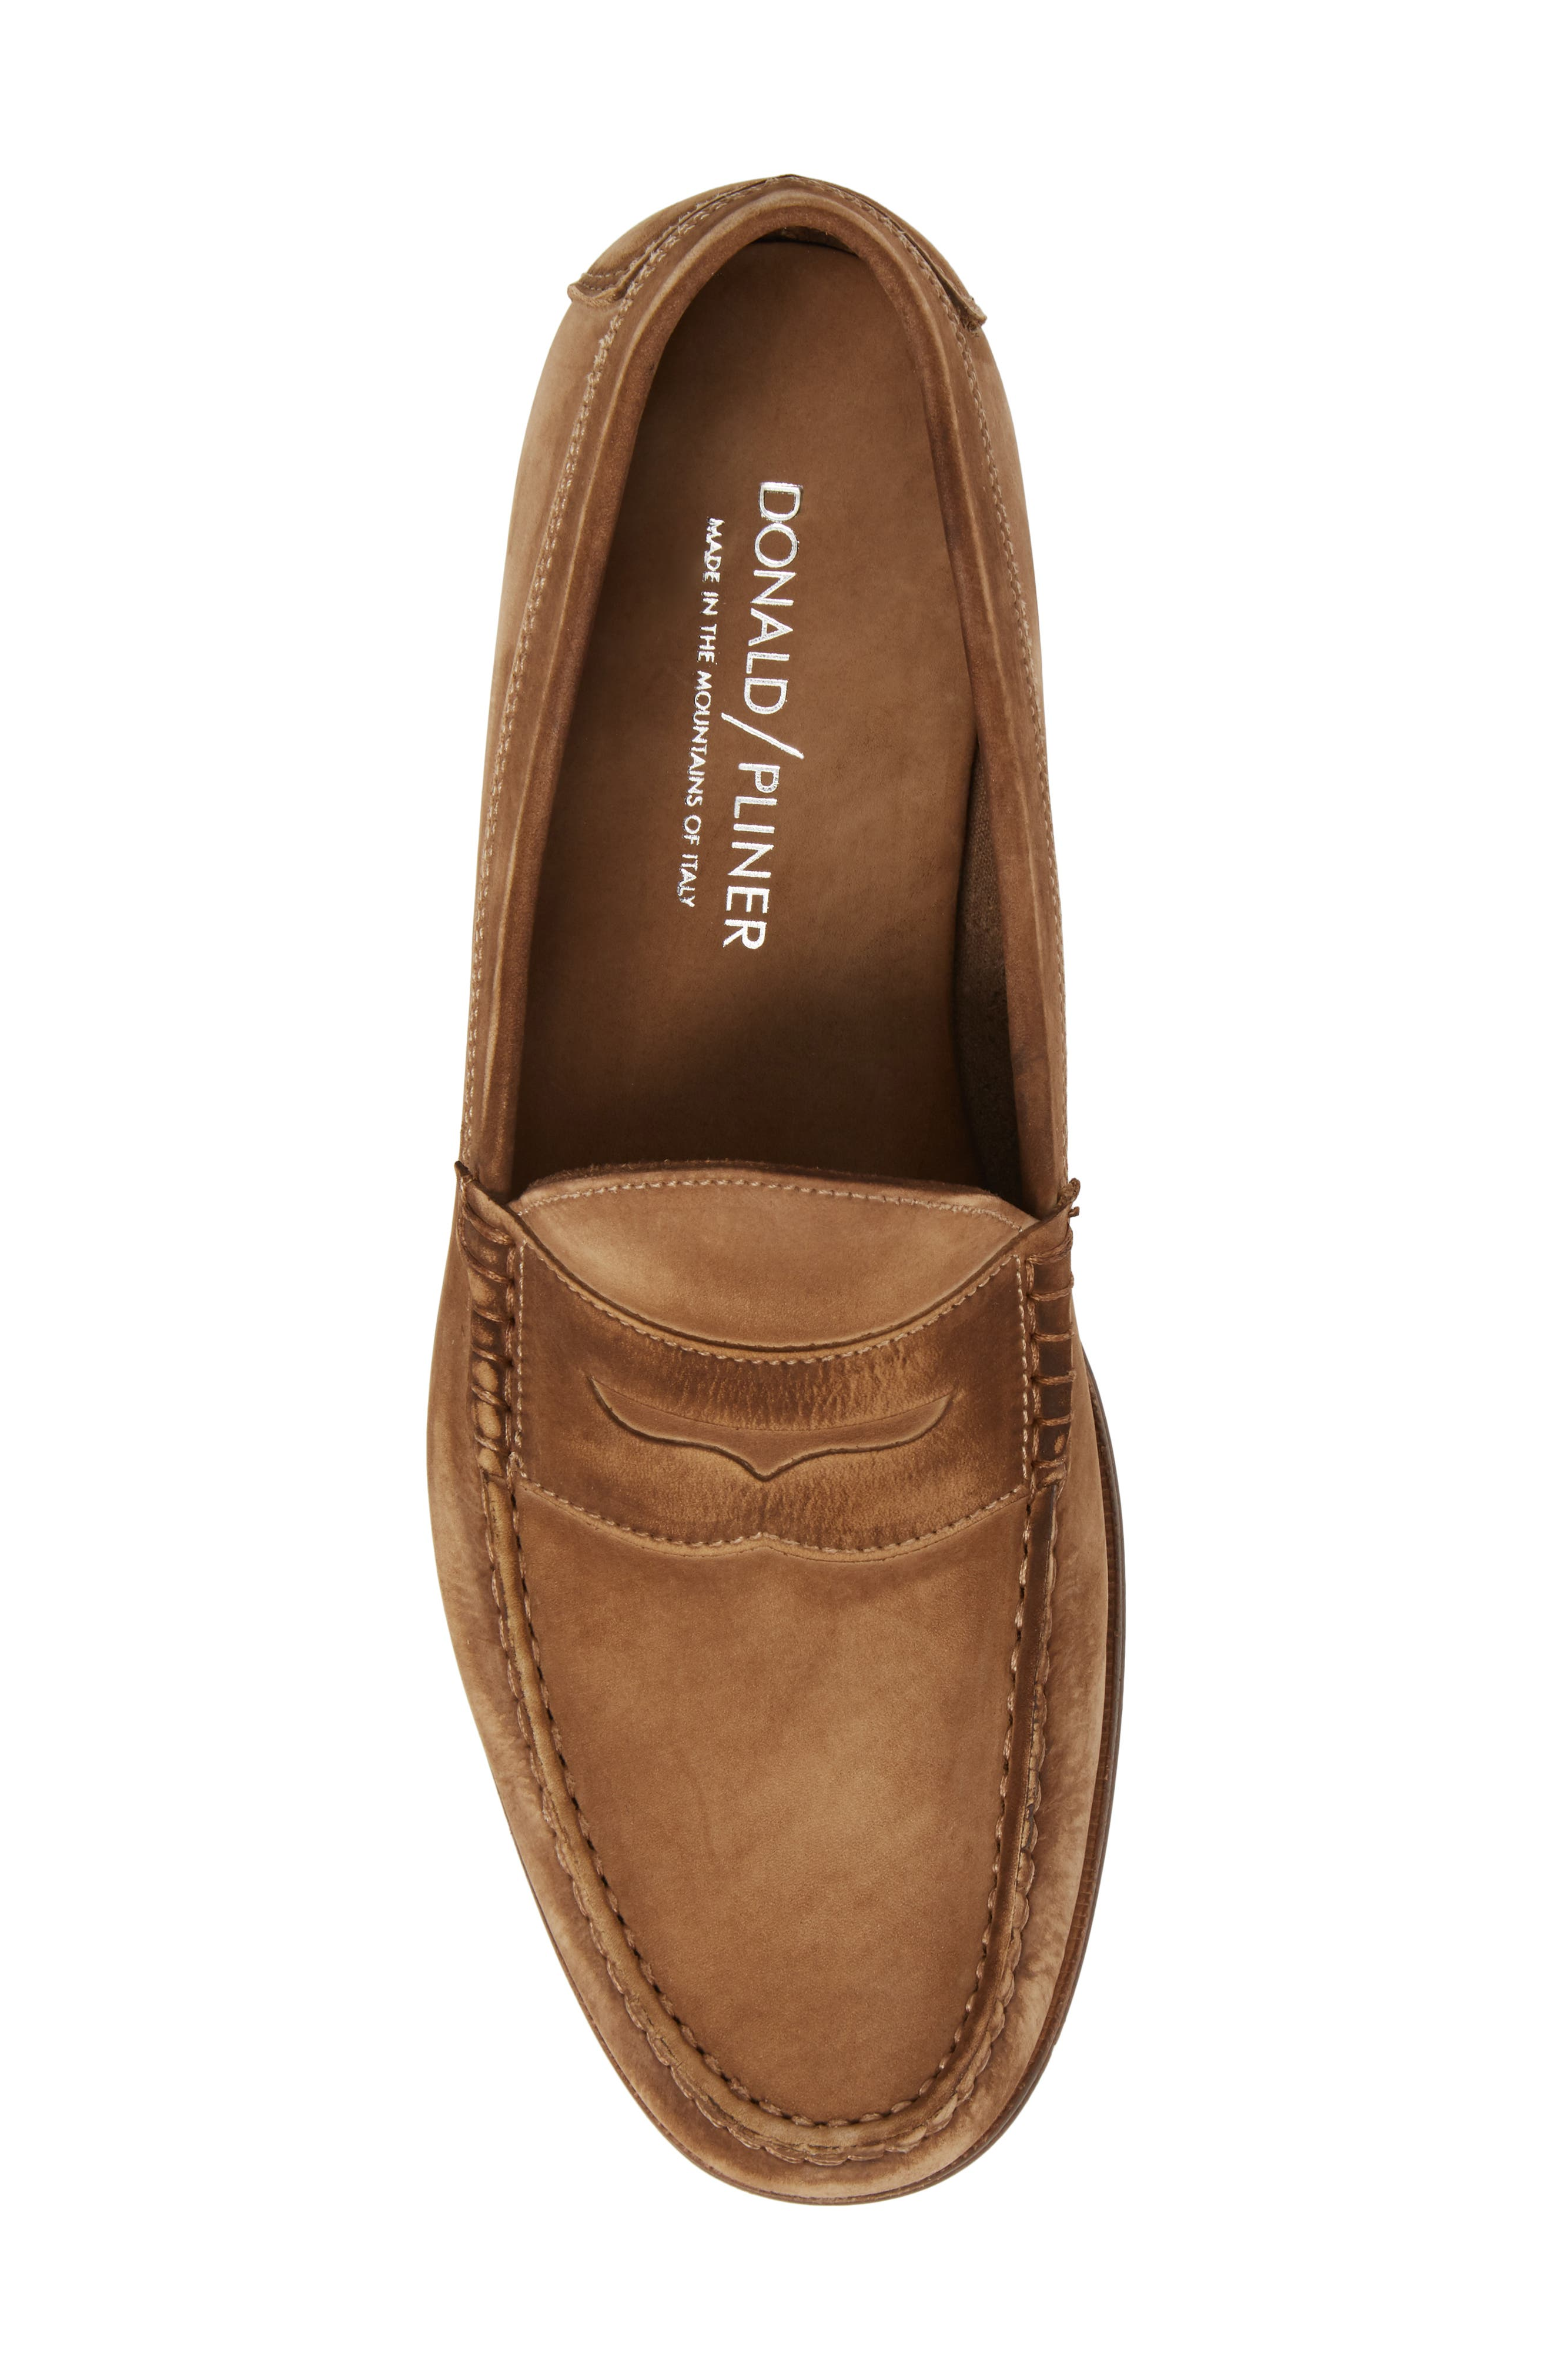 Nicola Penny Loafer,                             Alternate thumbnail 5, color,                             Chocolate Nubuck Leather